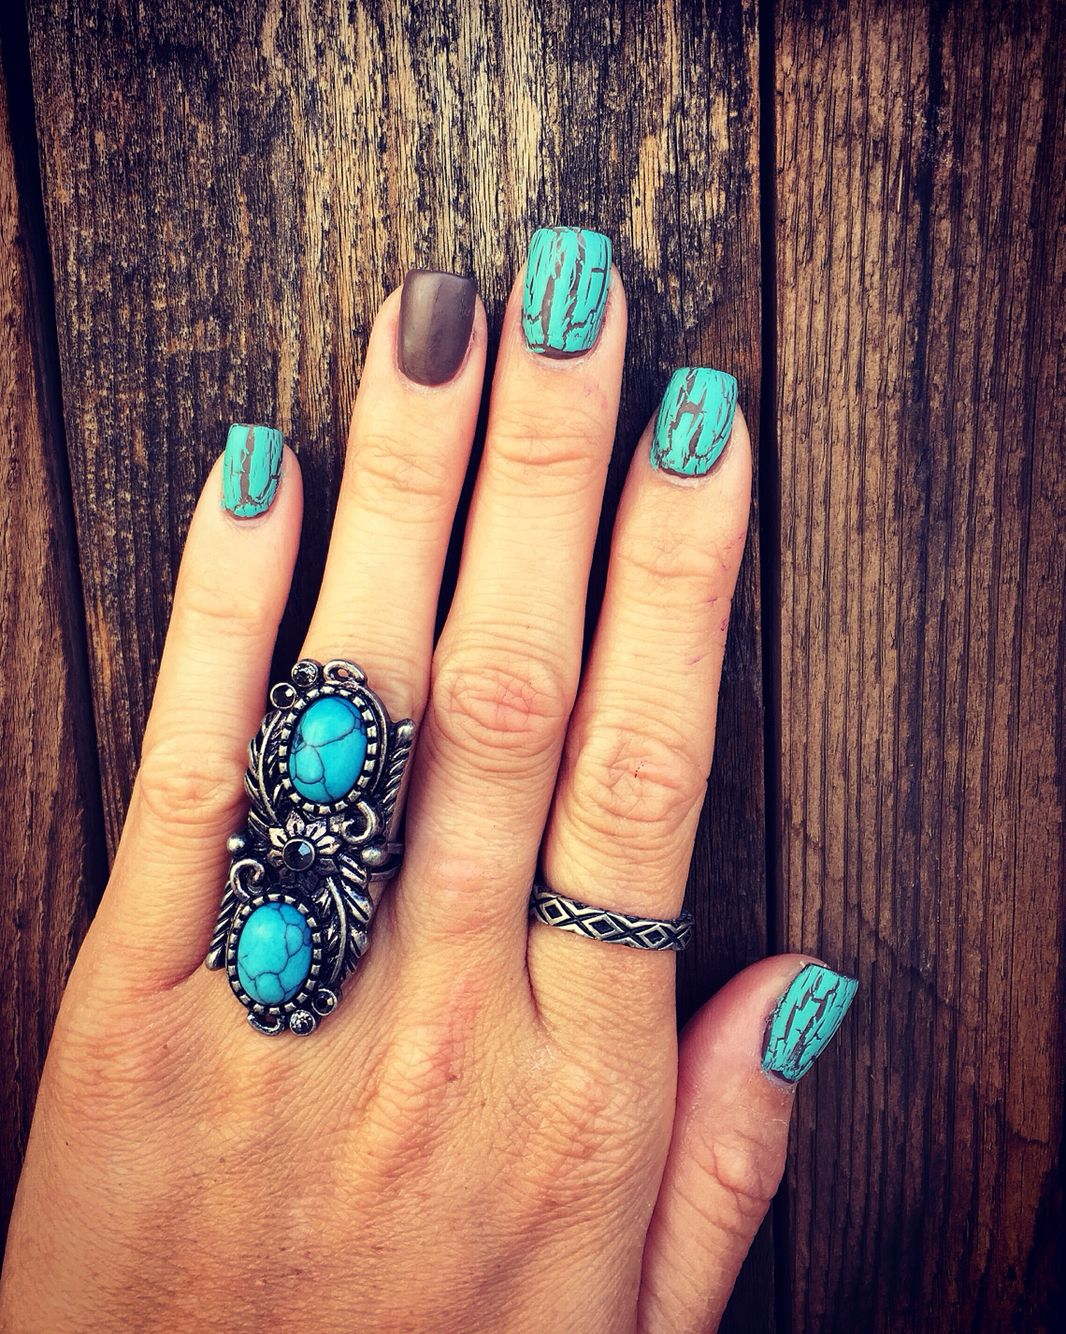 Matte Brown And Turquoise Le Nails I Did Kinda Miss My Usual Black But Loving These